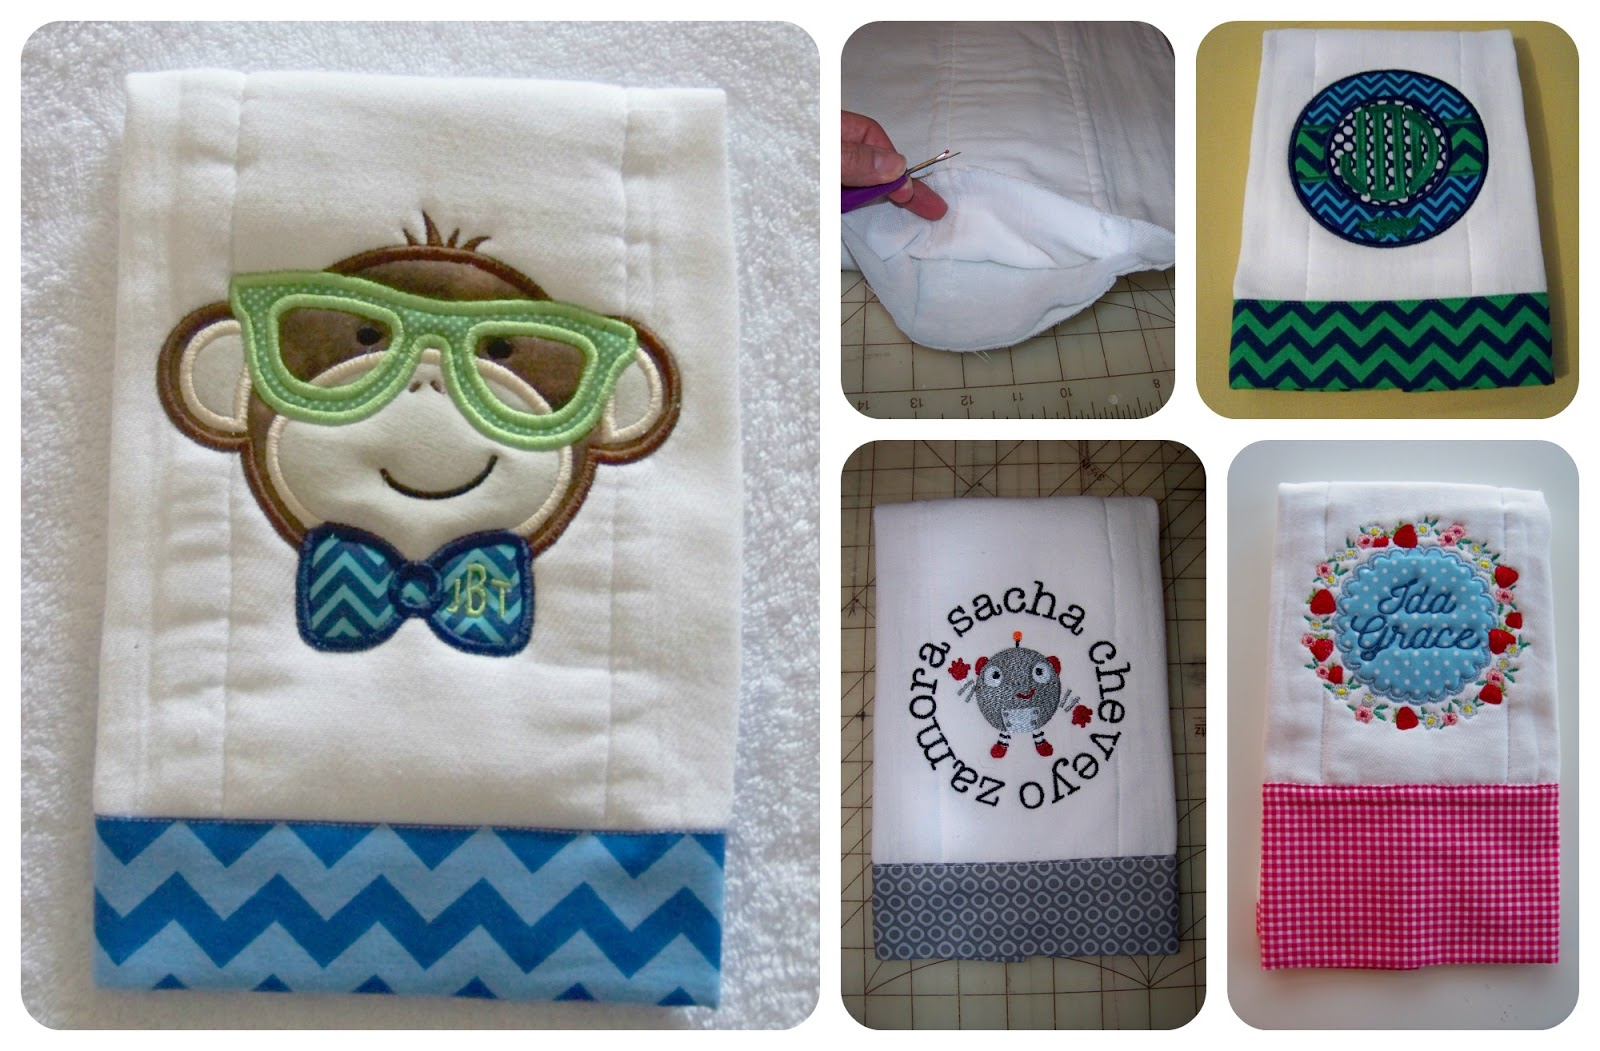 0789fedf6 With Glittering Eyes  Burp Cloth Tutorial  Personalized Baby Project 1